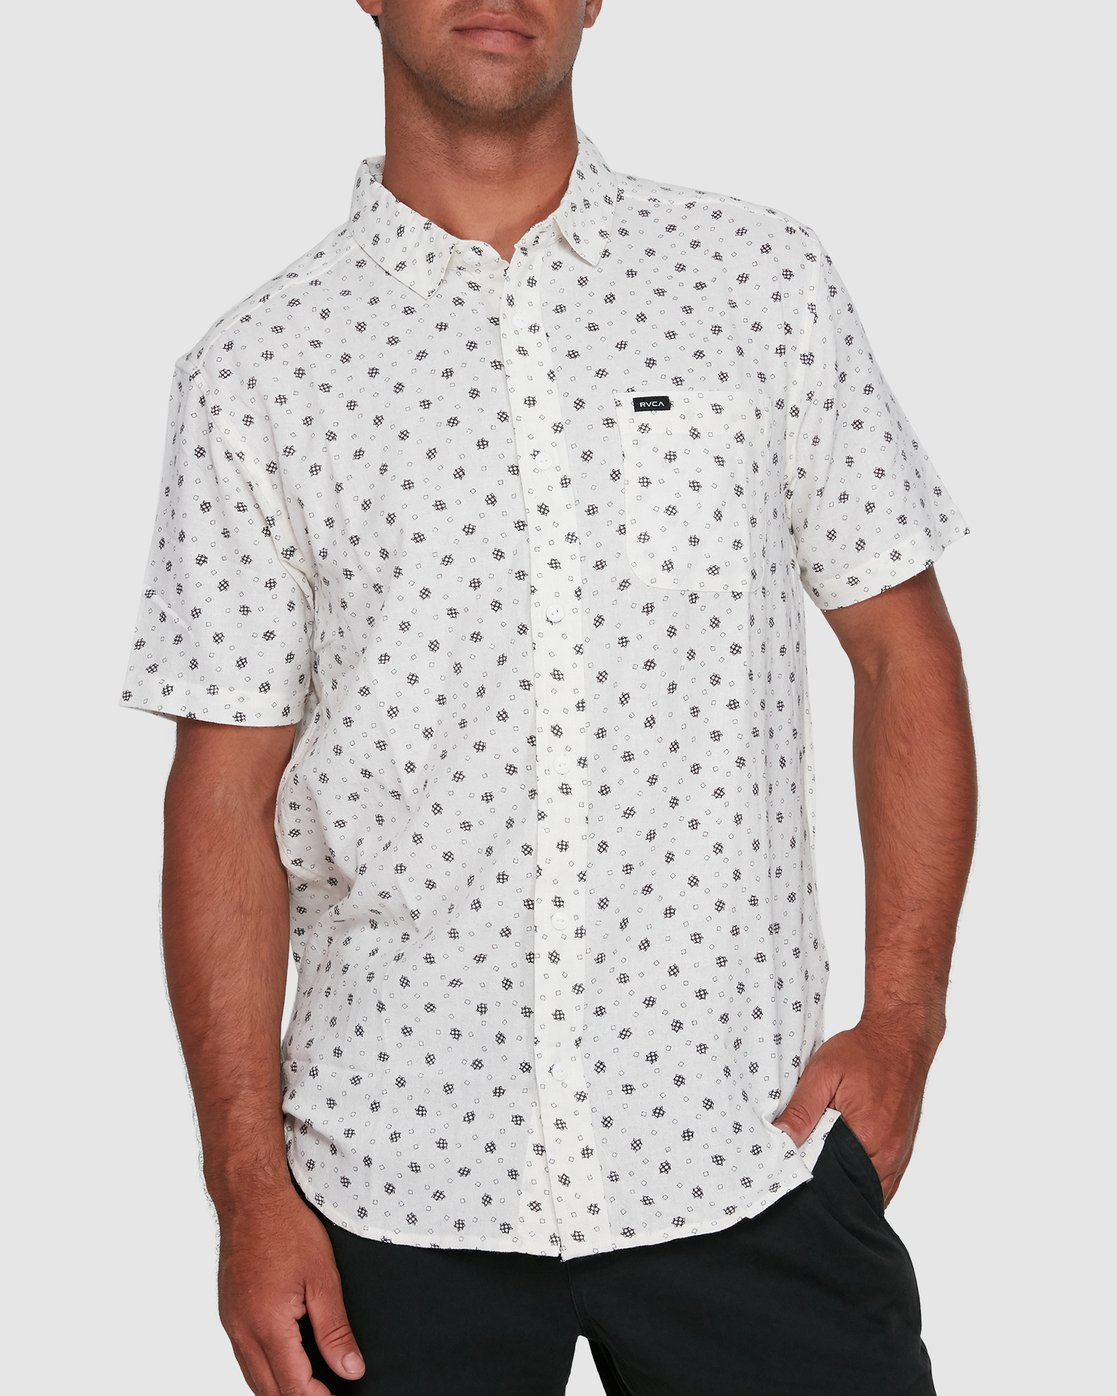 0 OUTBREAK SHORT SLEEVE TOP White R305183 RVCA